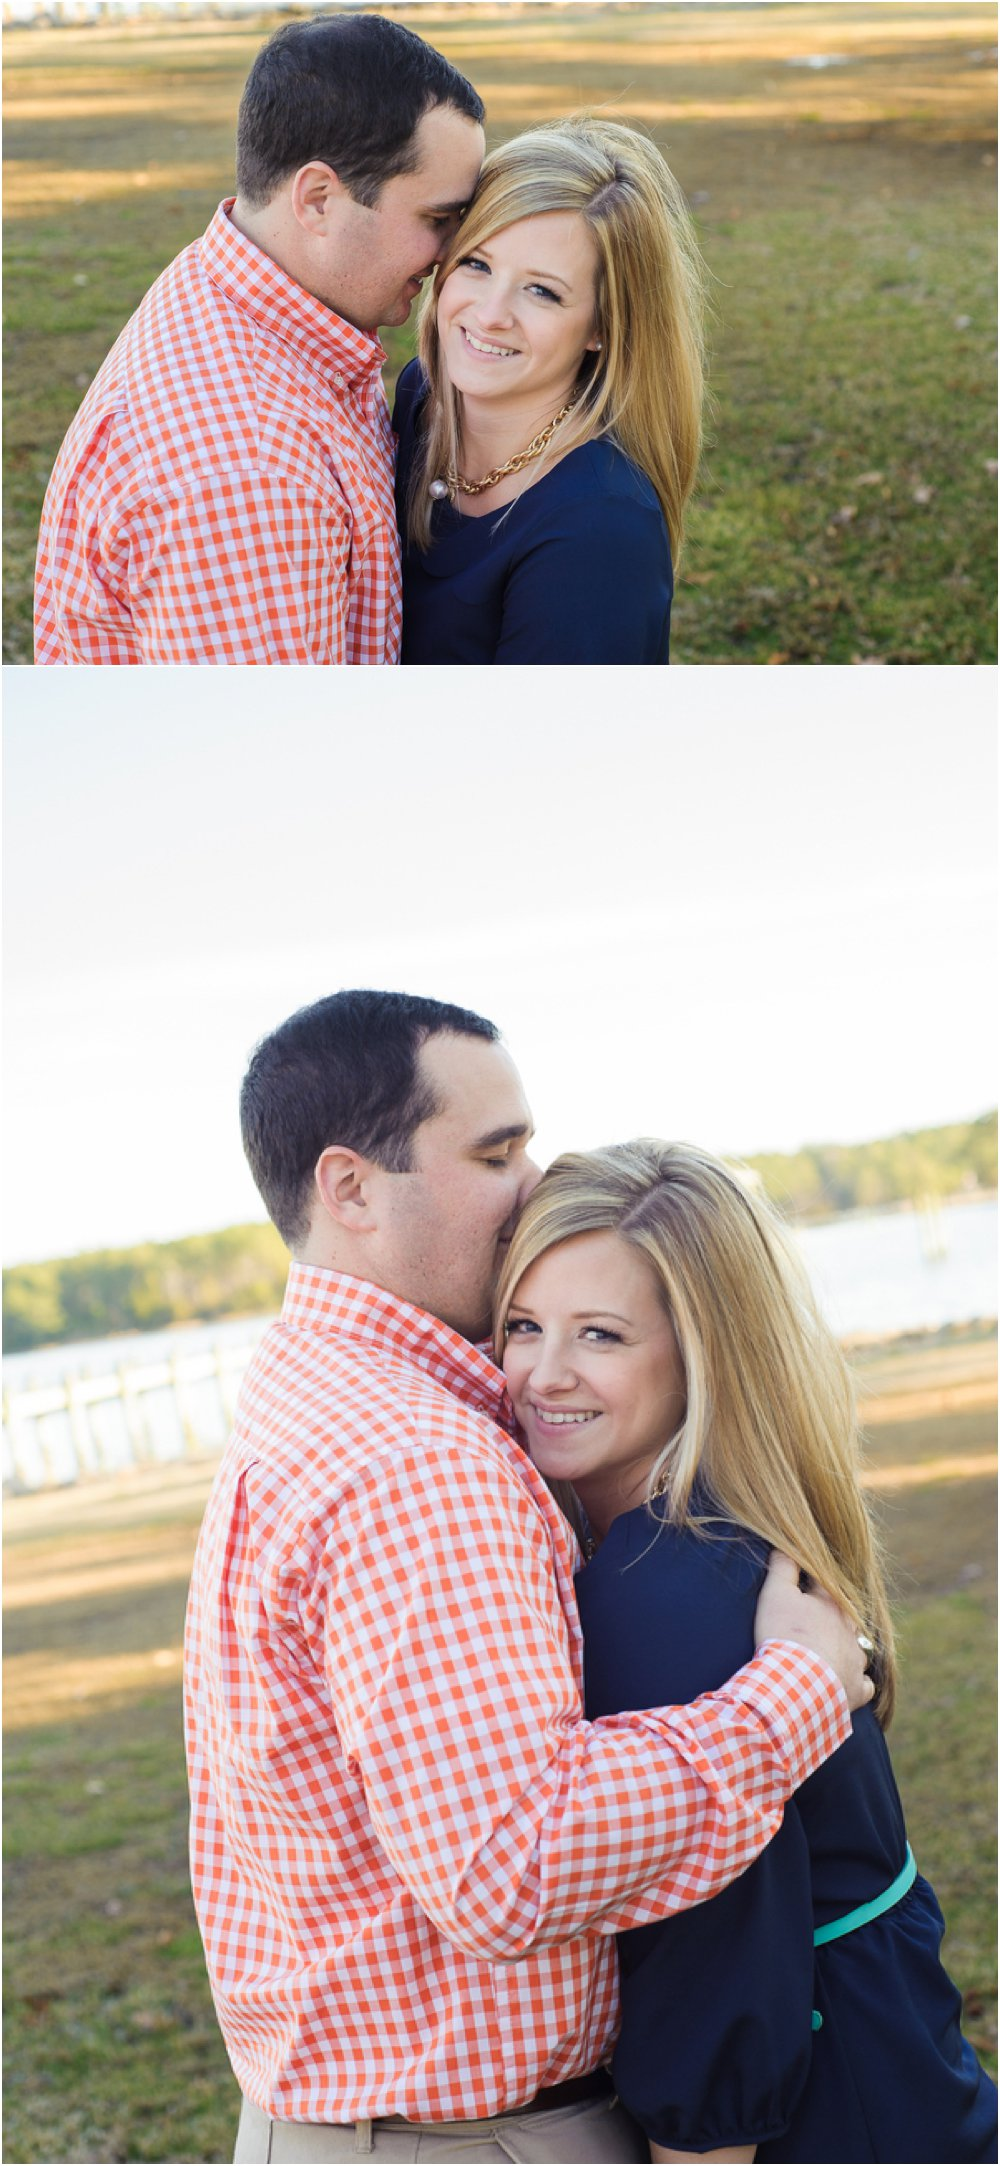 Engagement Session by Fowler Studios as seen on Hill City Bride